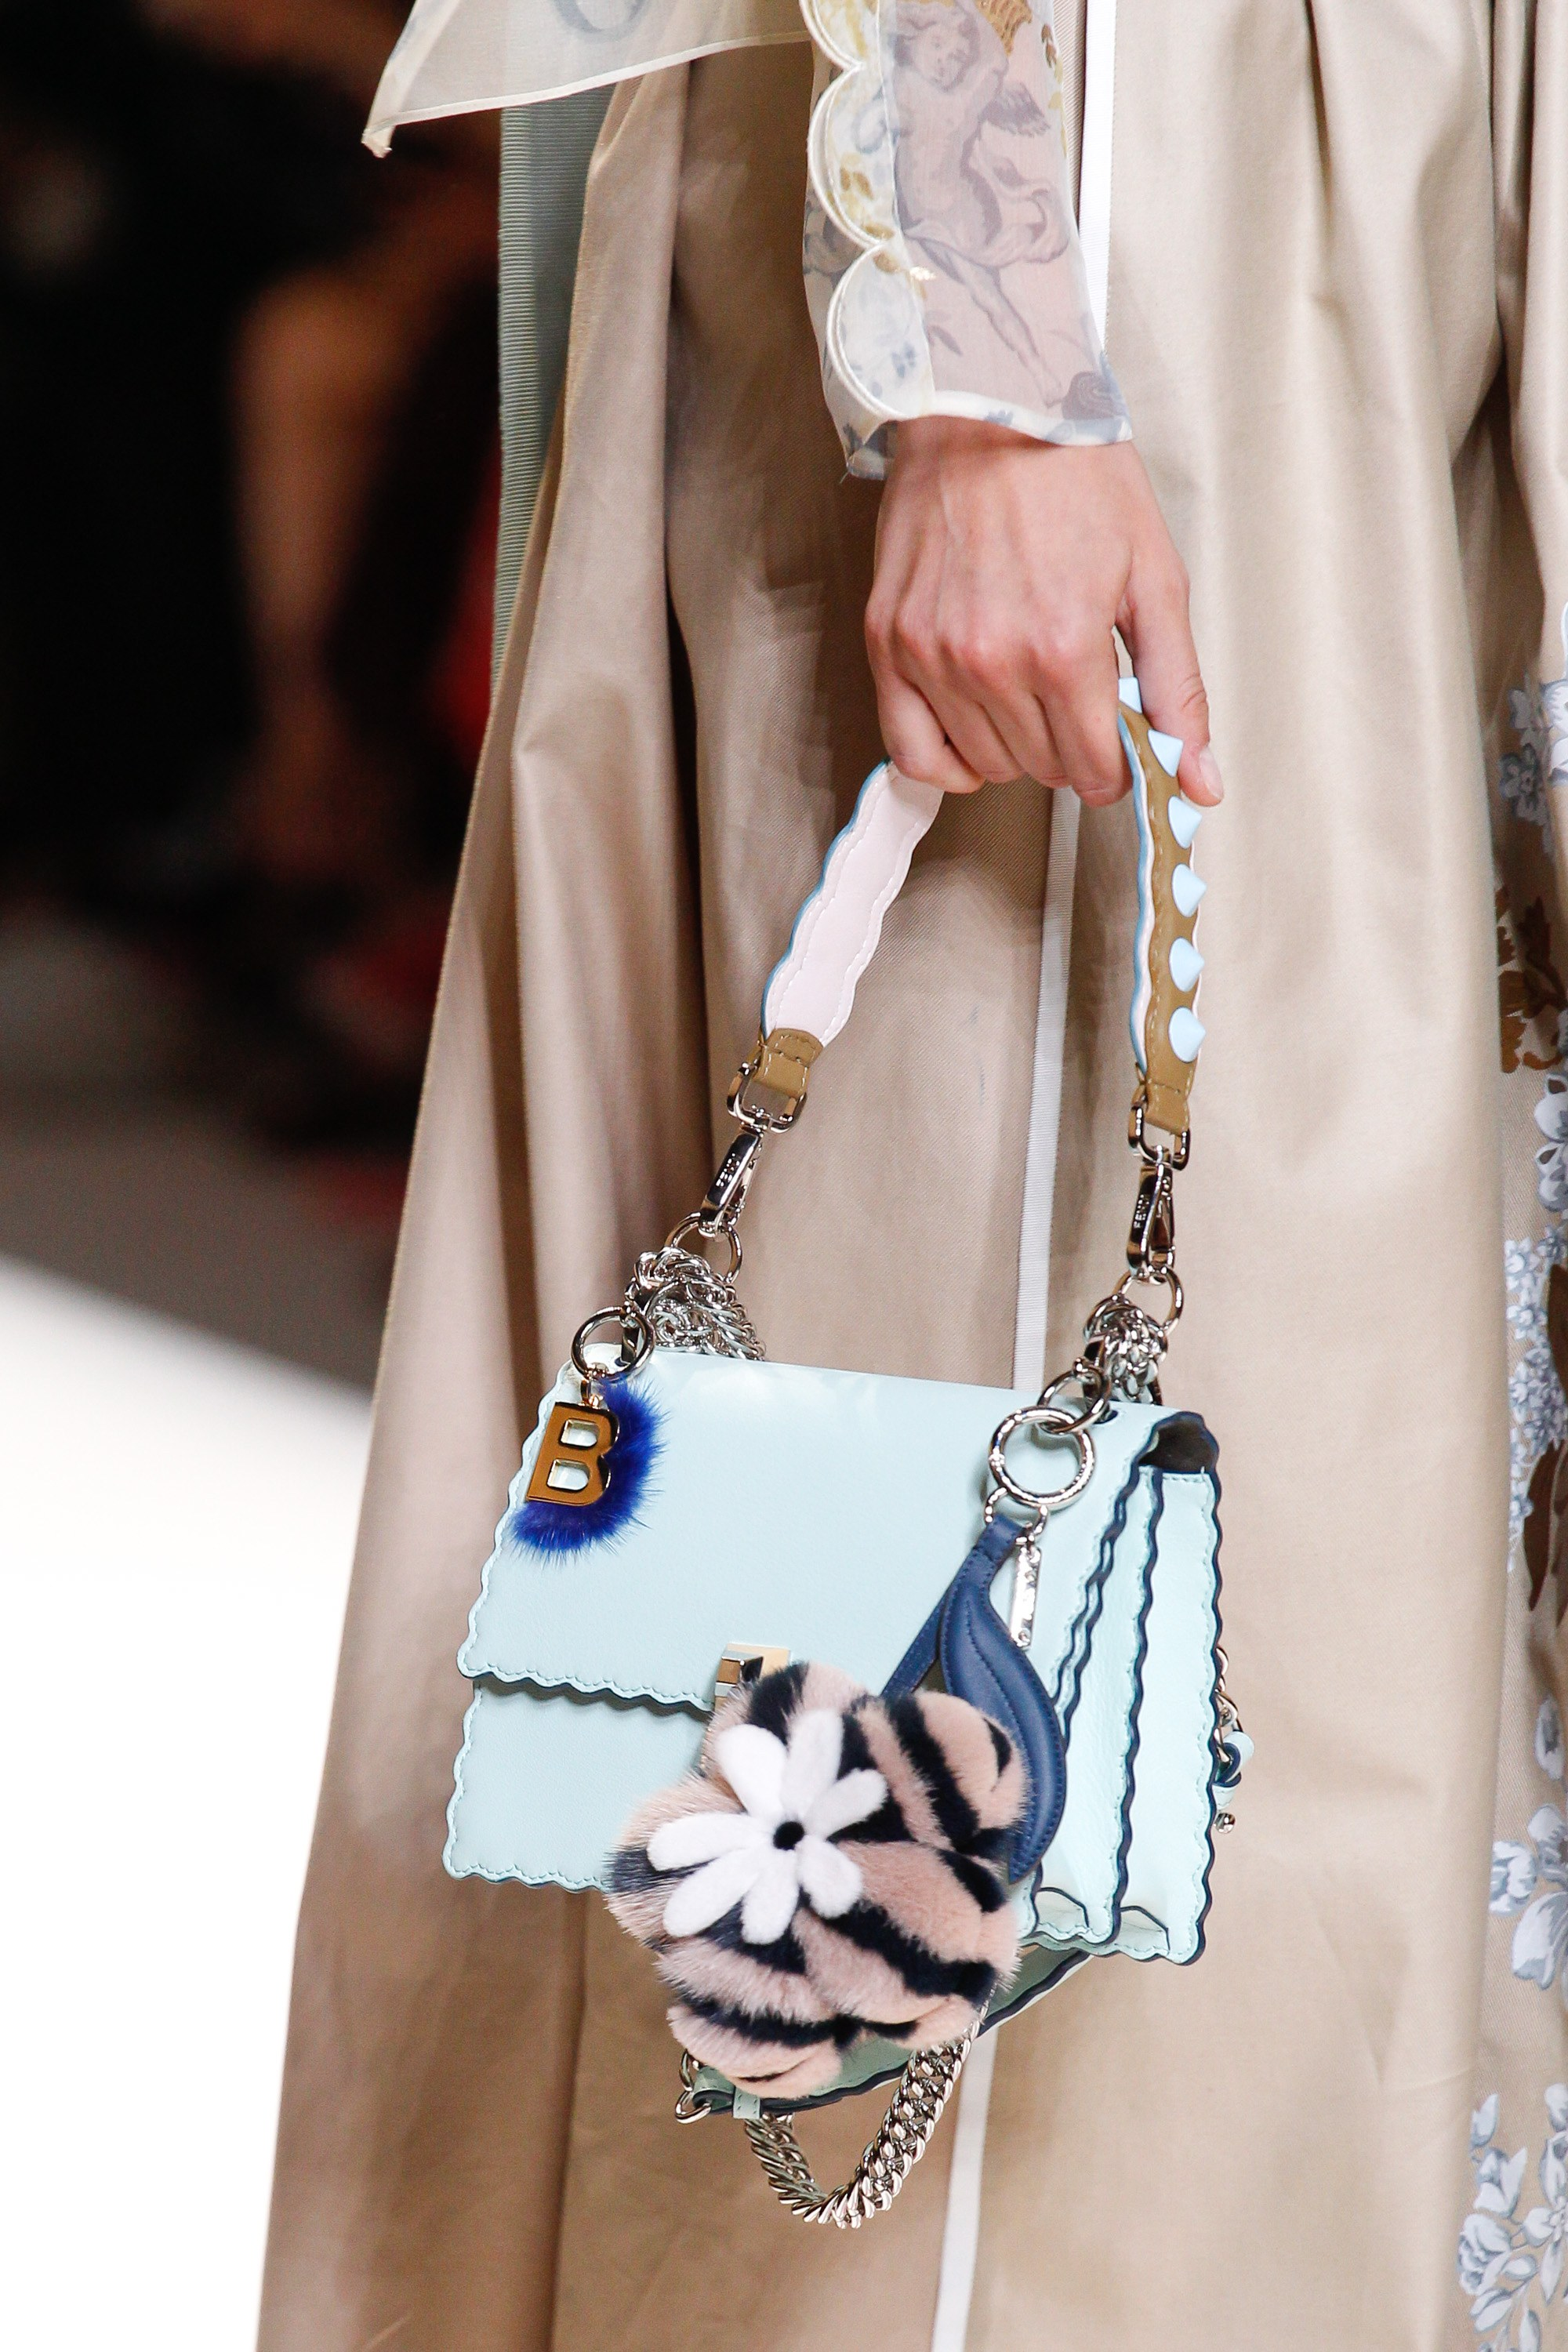 fendi springsummer 2017 runway bag collection � spotted